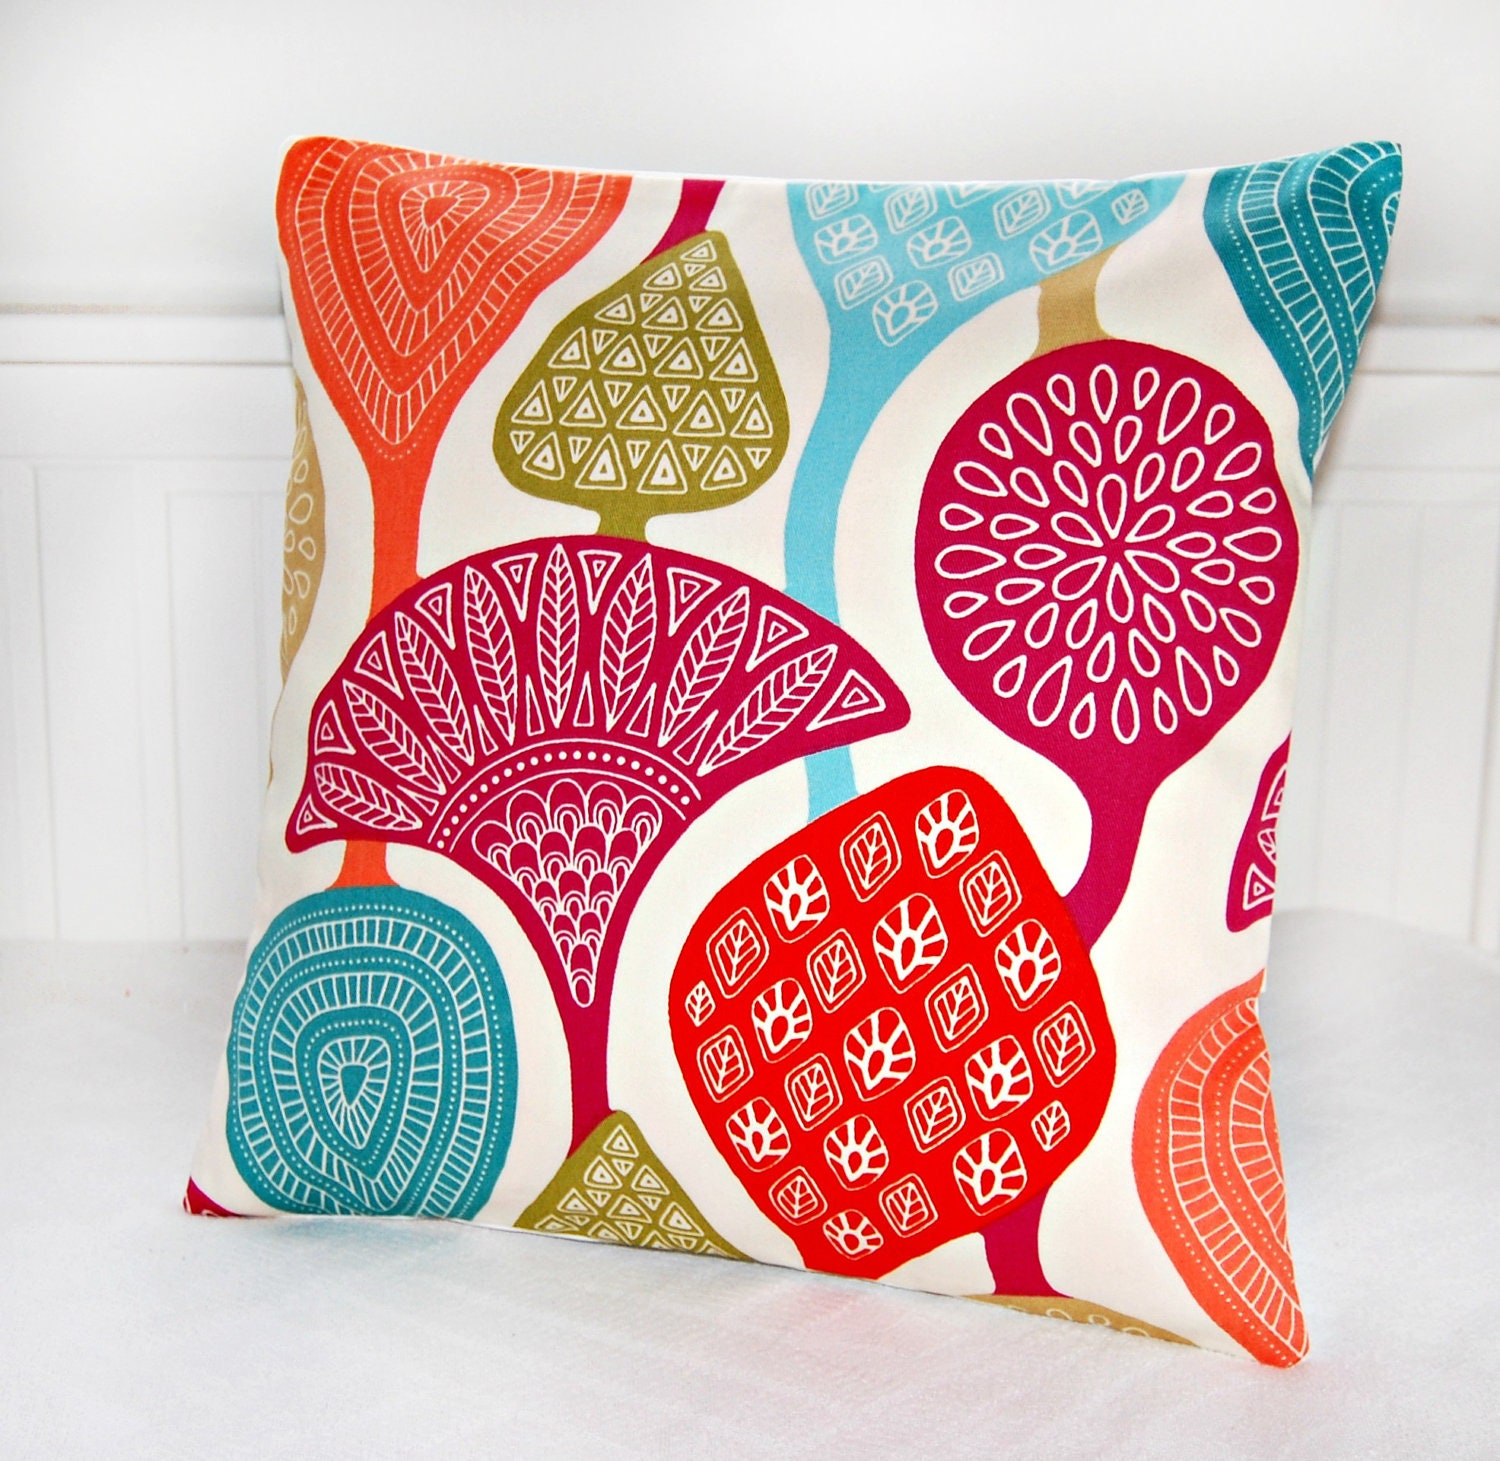 decorative pillow cover teal pink green red by LittleJoobieBoo